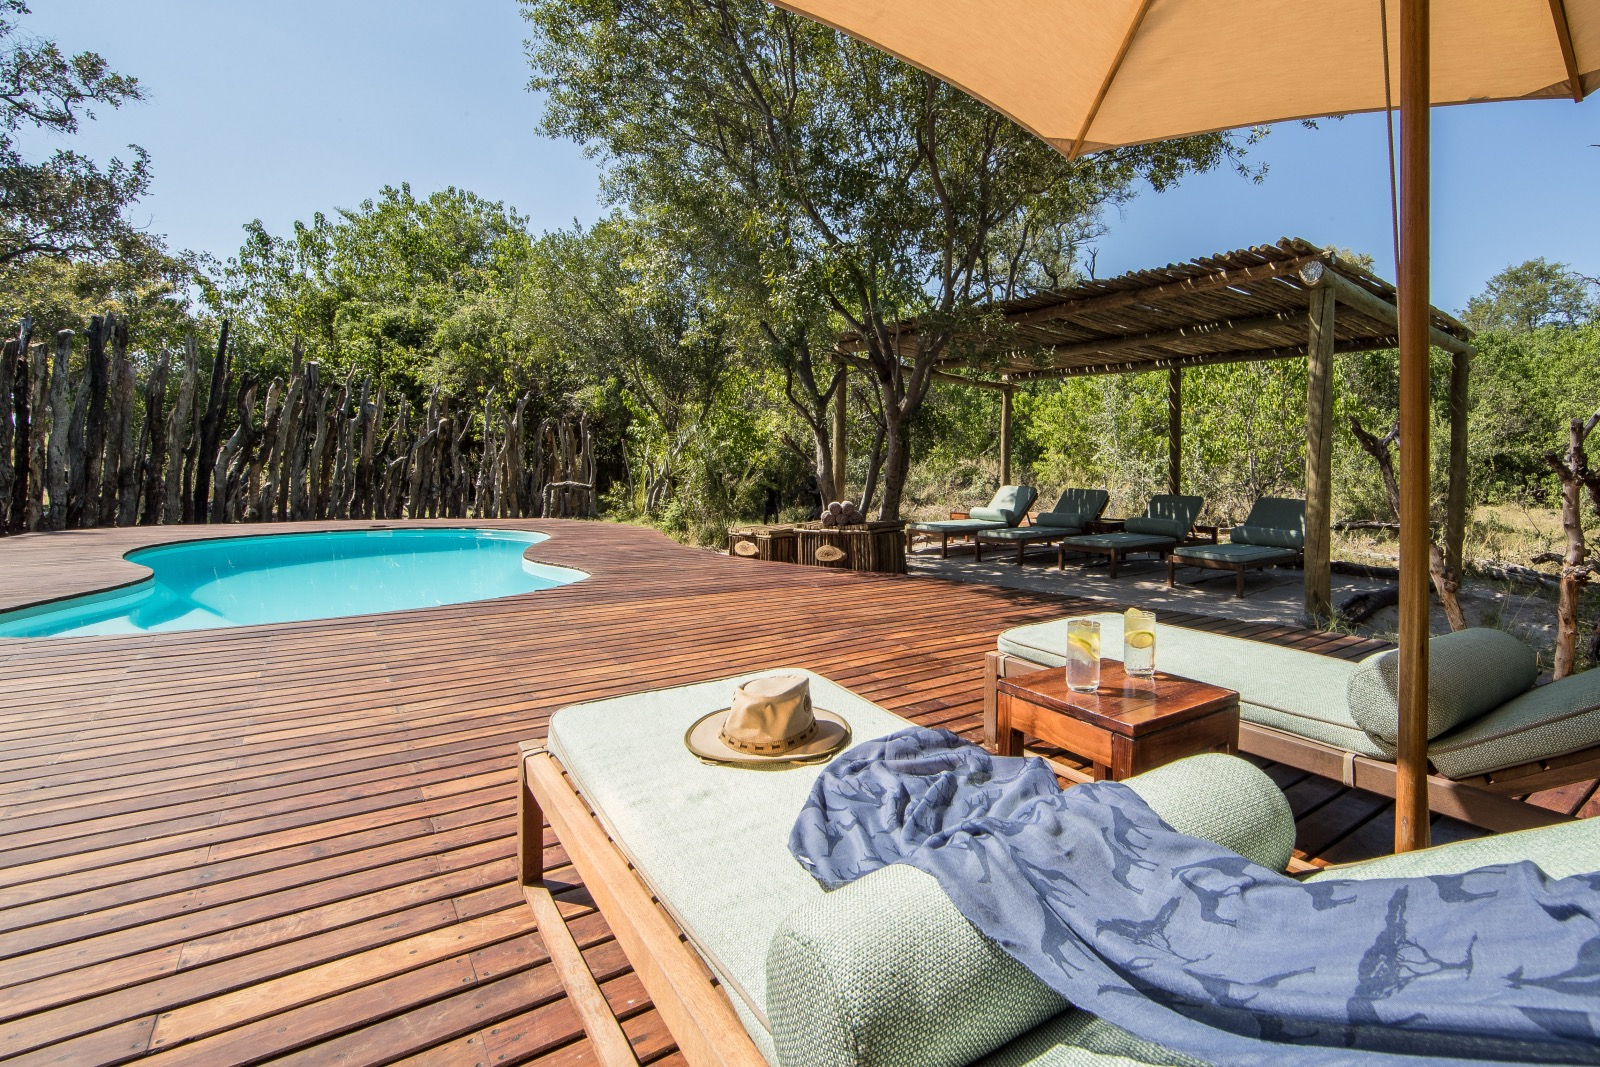 lodges in Botswana, Best safari lodges in Botswana 2020 #SunSafarisSays